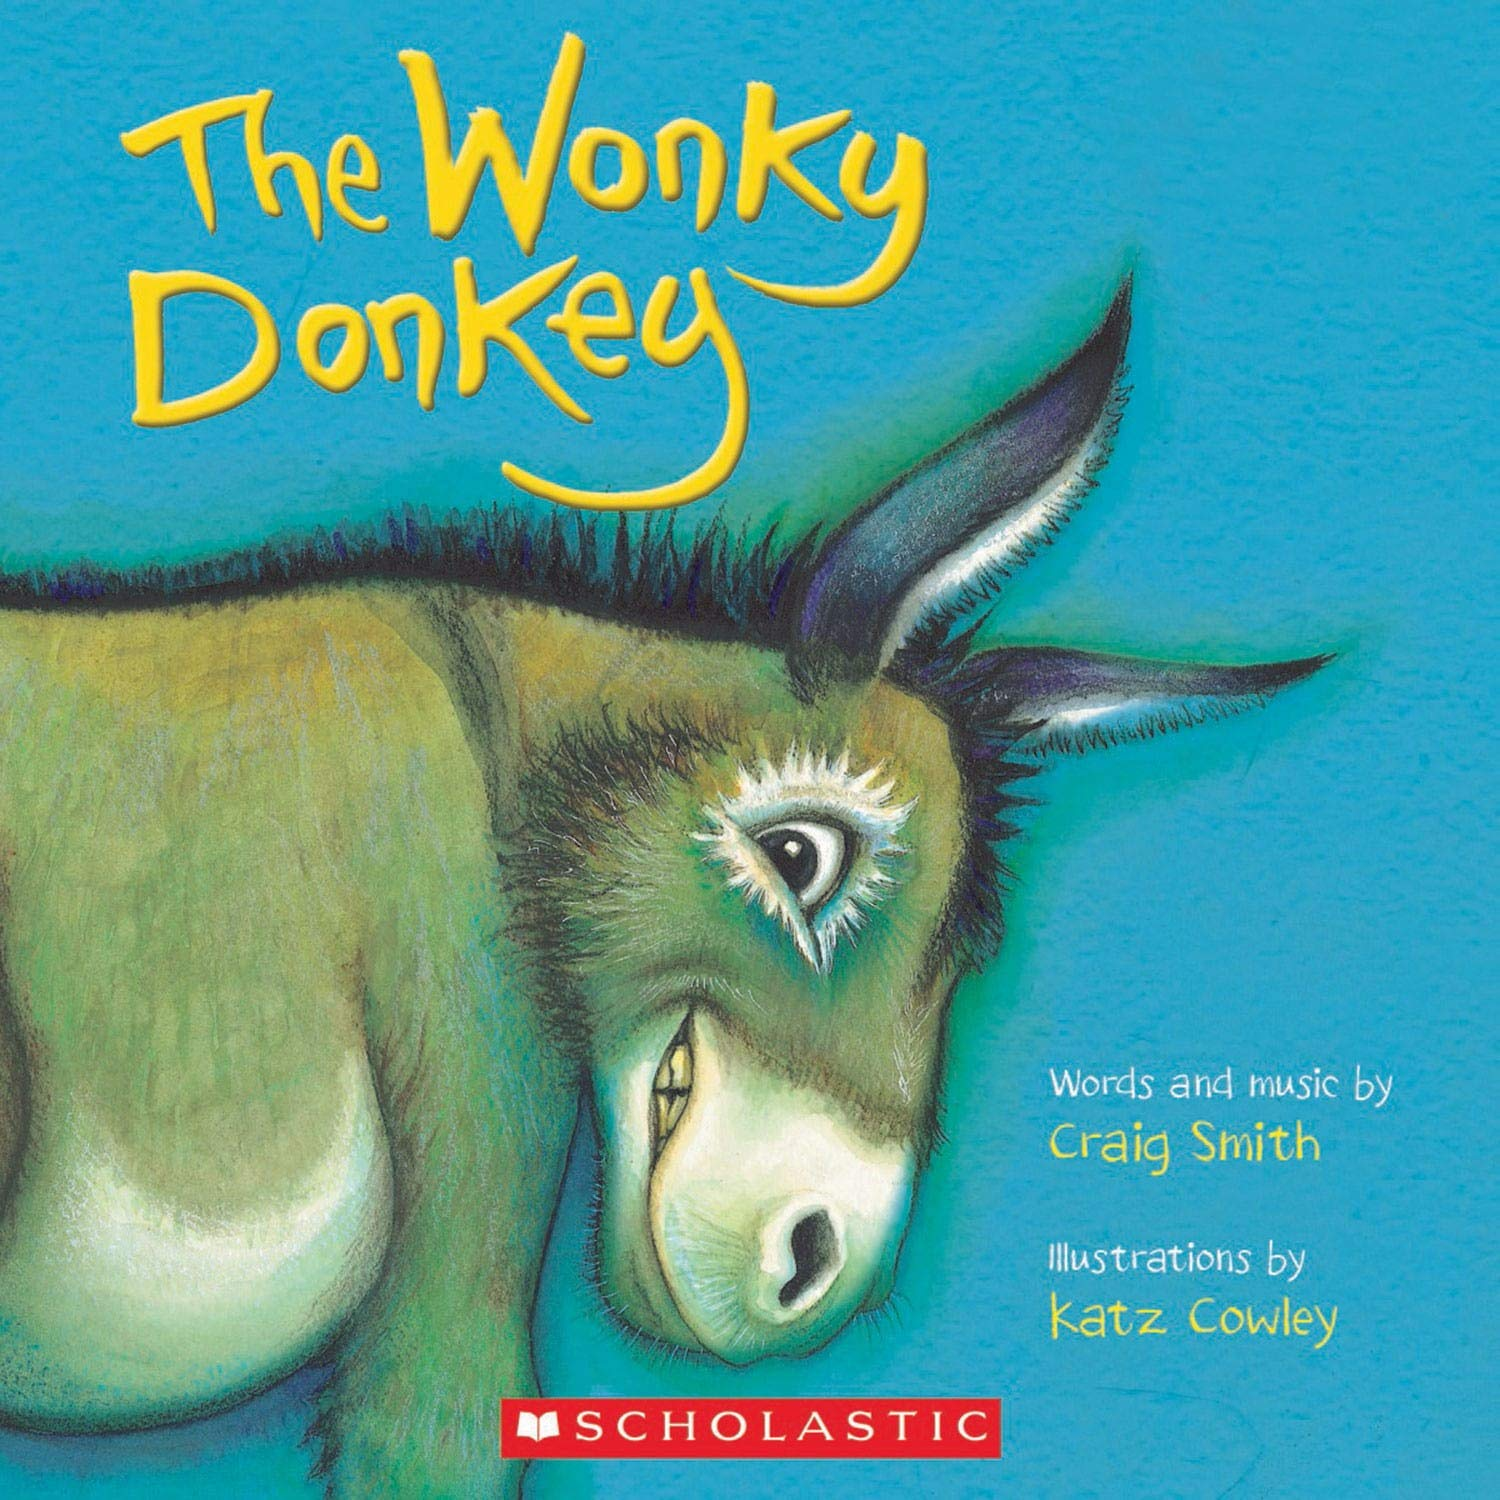 The Wonky Donkey – Craig Smith (2010), Hardcover Children's Book